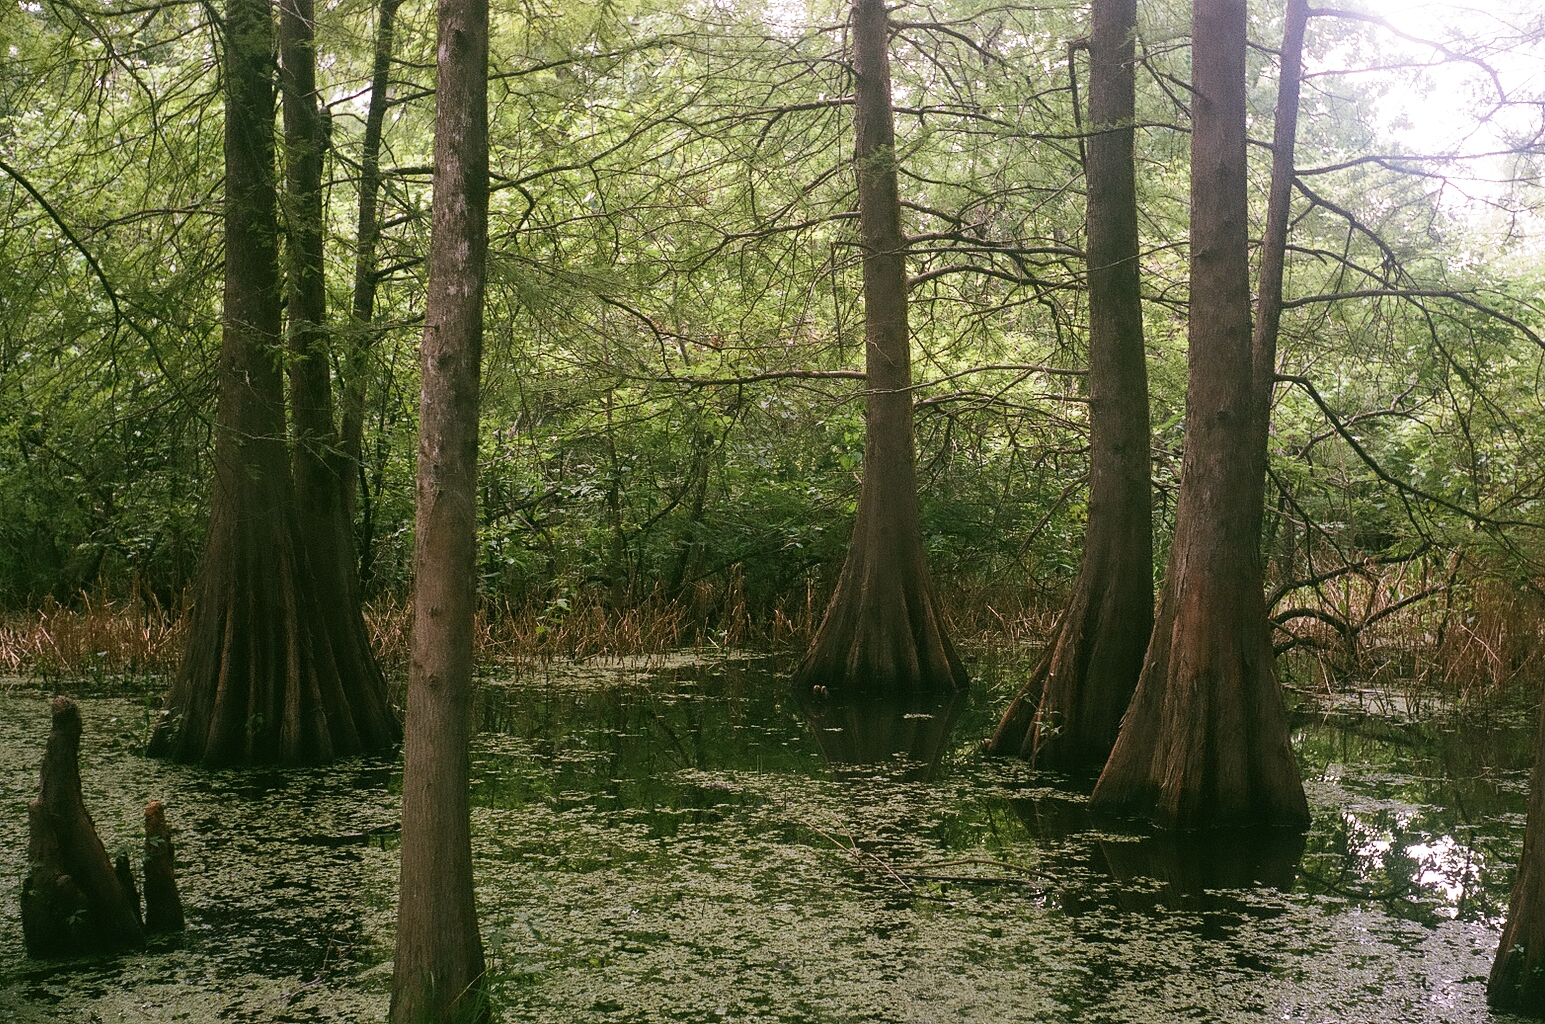 A clear shot of more cypress trees